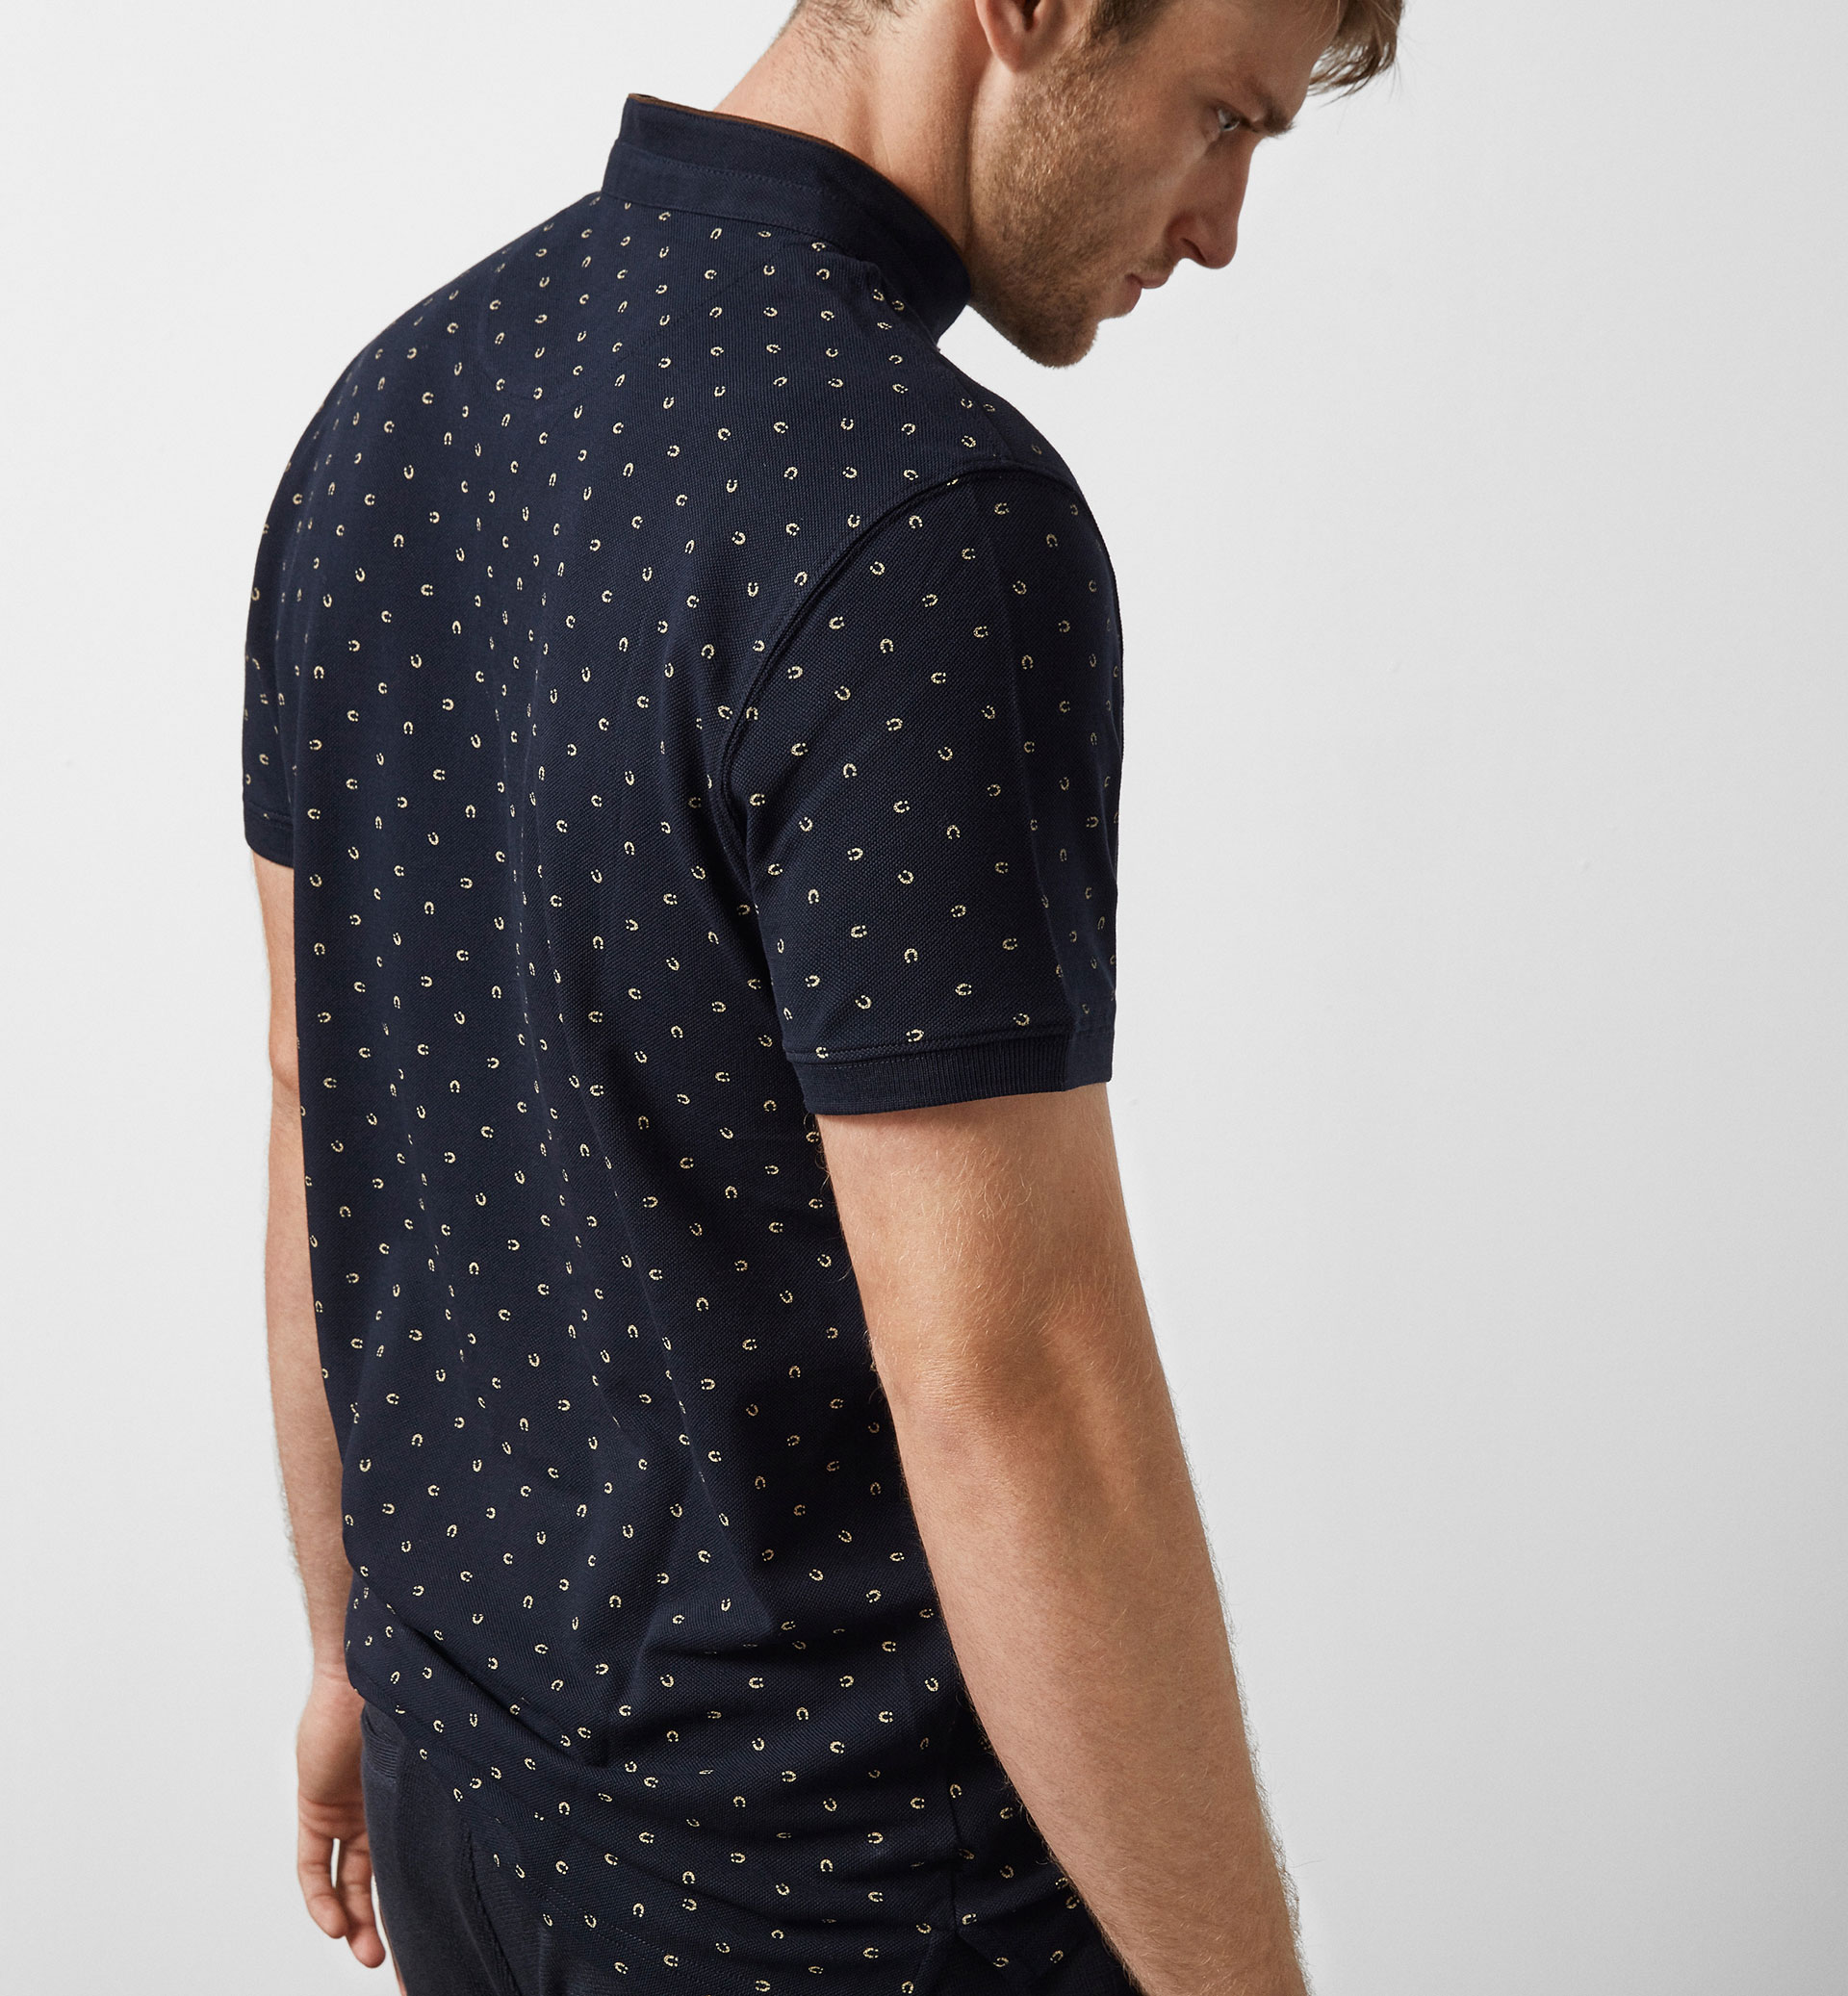 LIMITED EDITION POLO SHIRT WITH A HORSESHOE PRINT